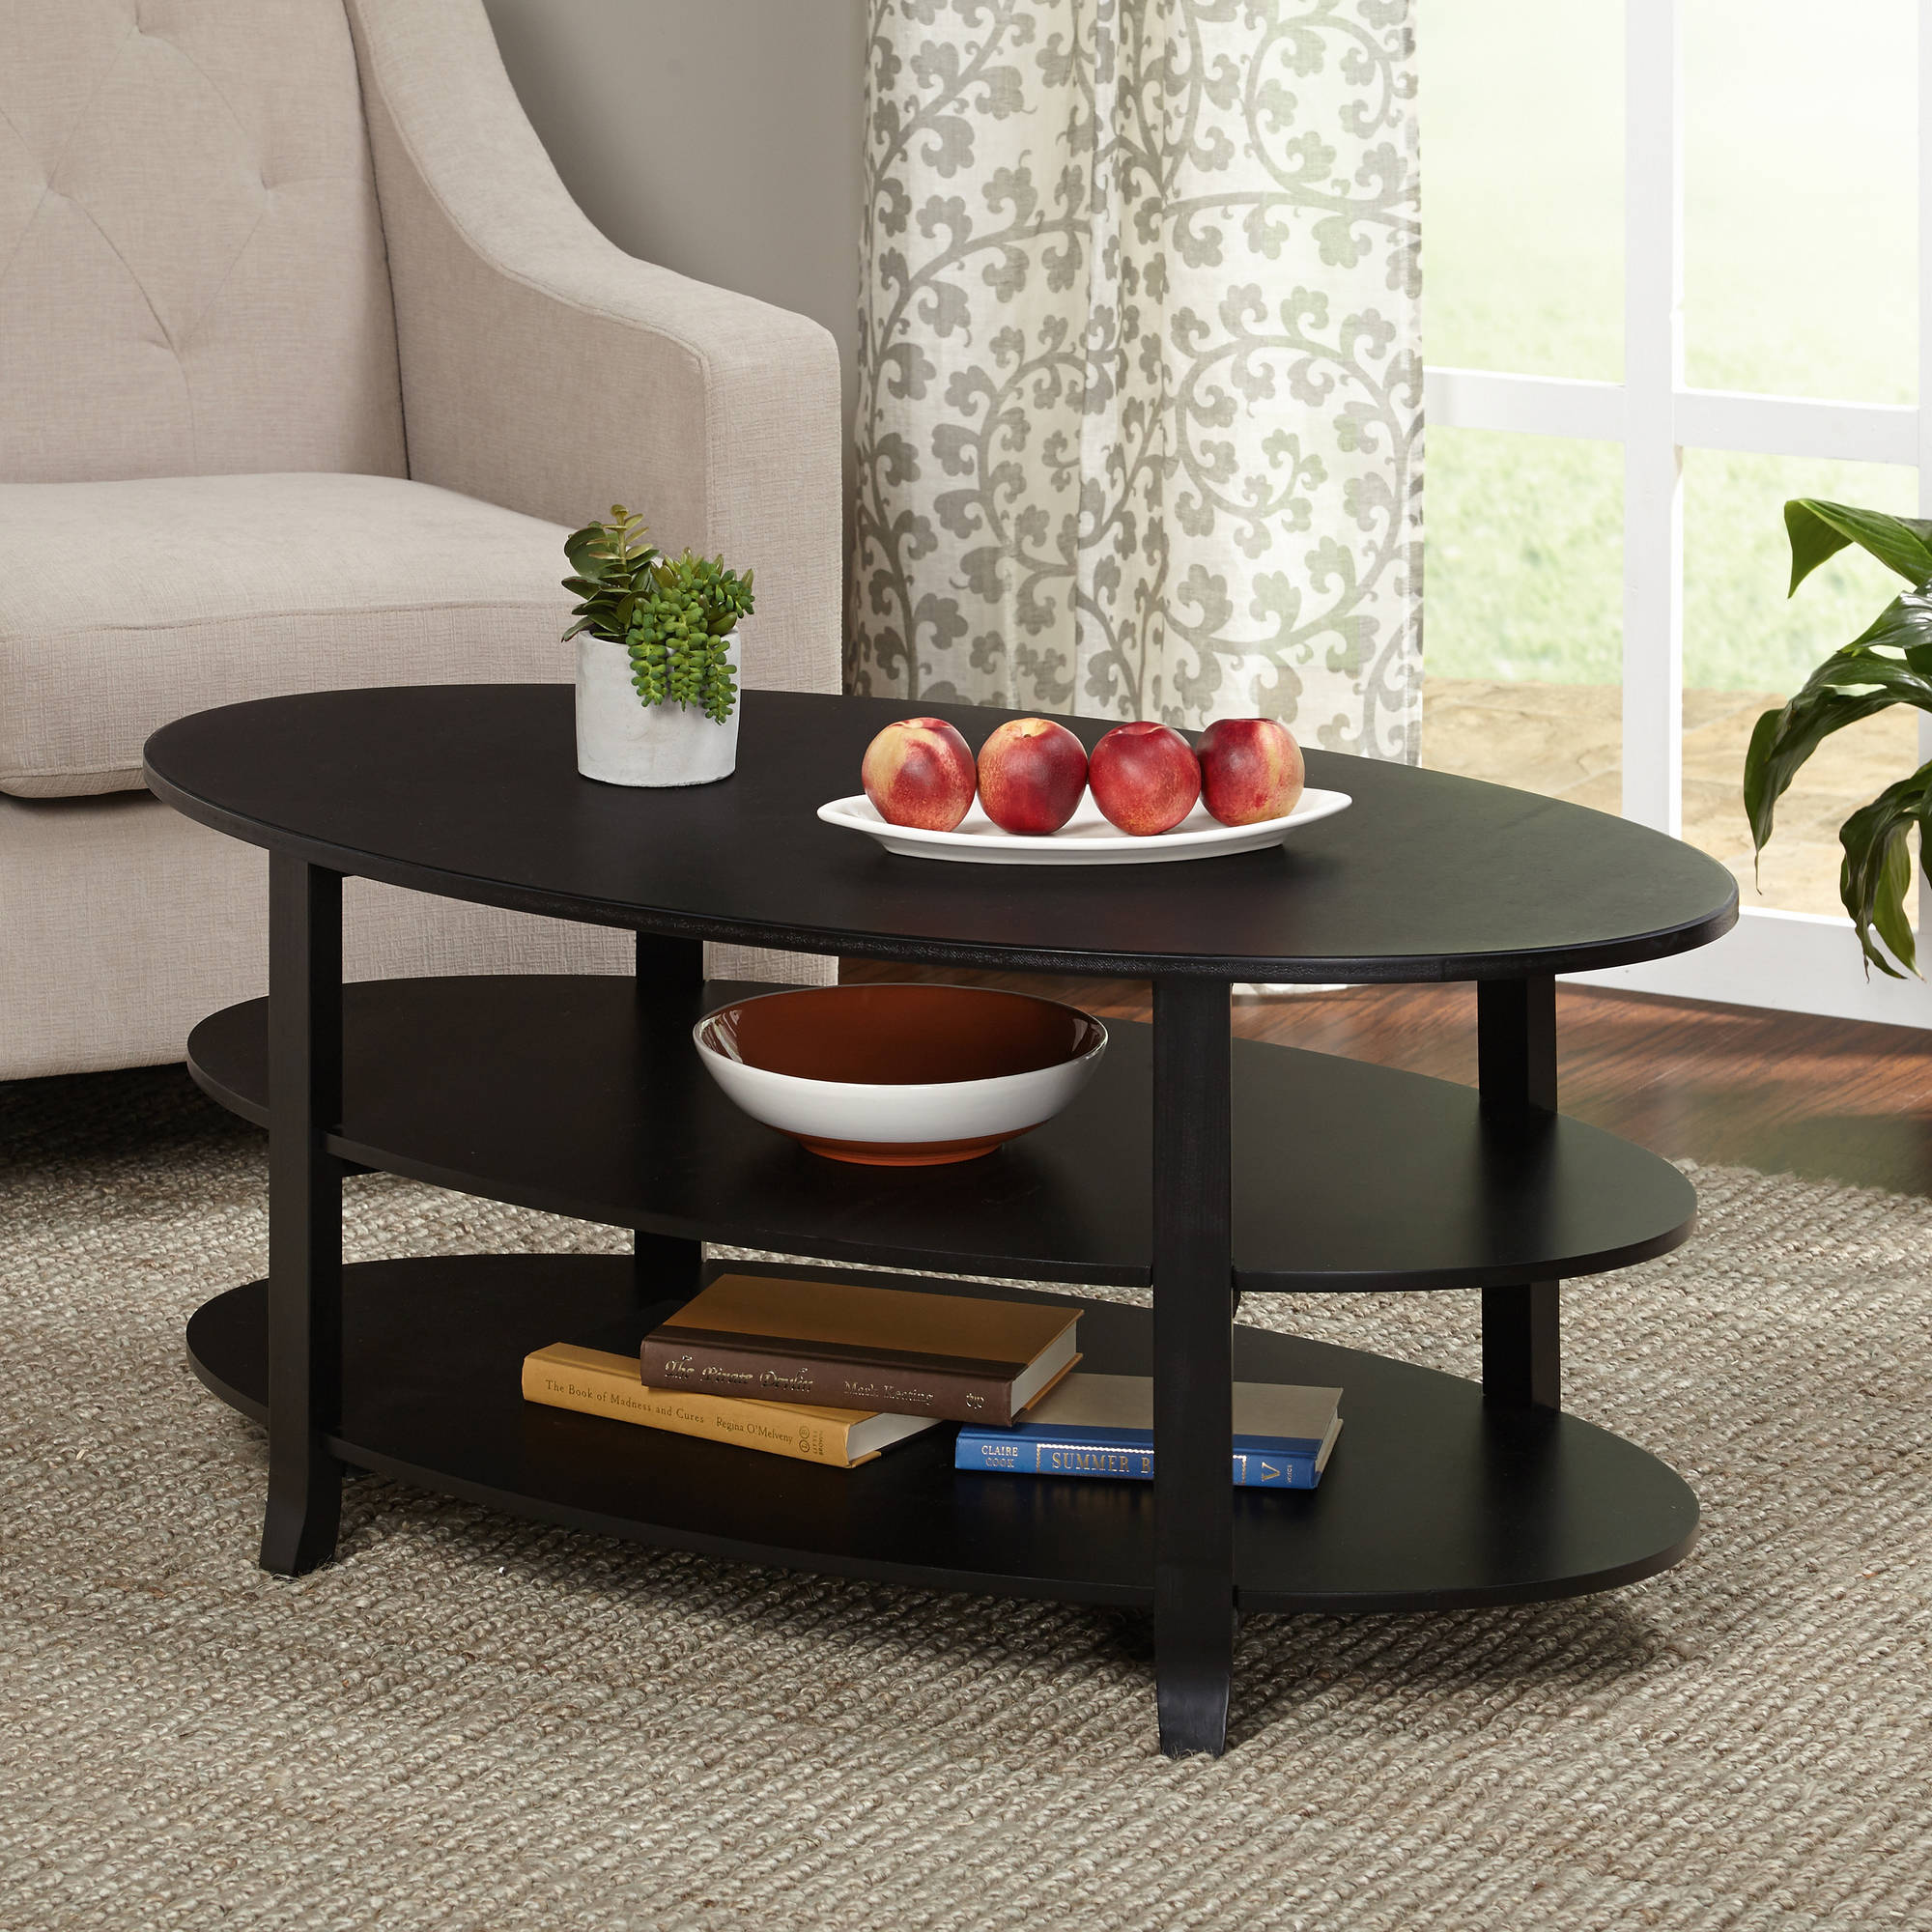 London 3-Tier Coffee Table, Multiple Finishes